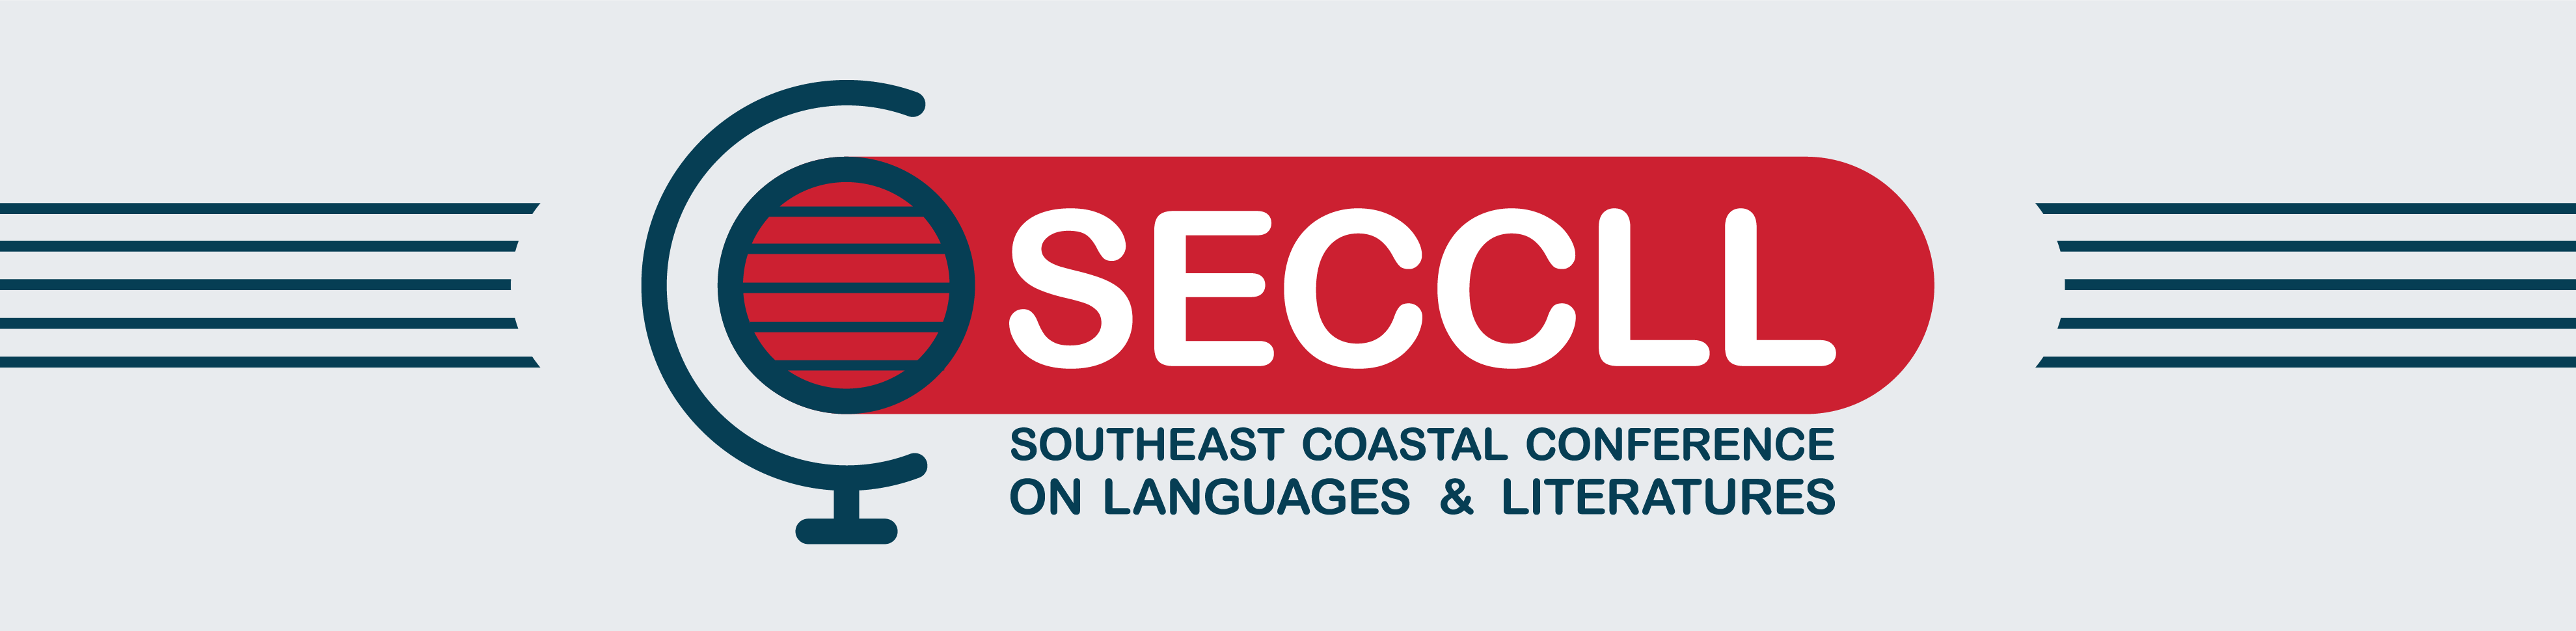 South East Coastal Conference on Languages and Literatures